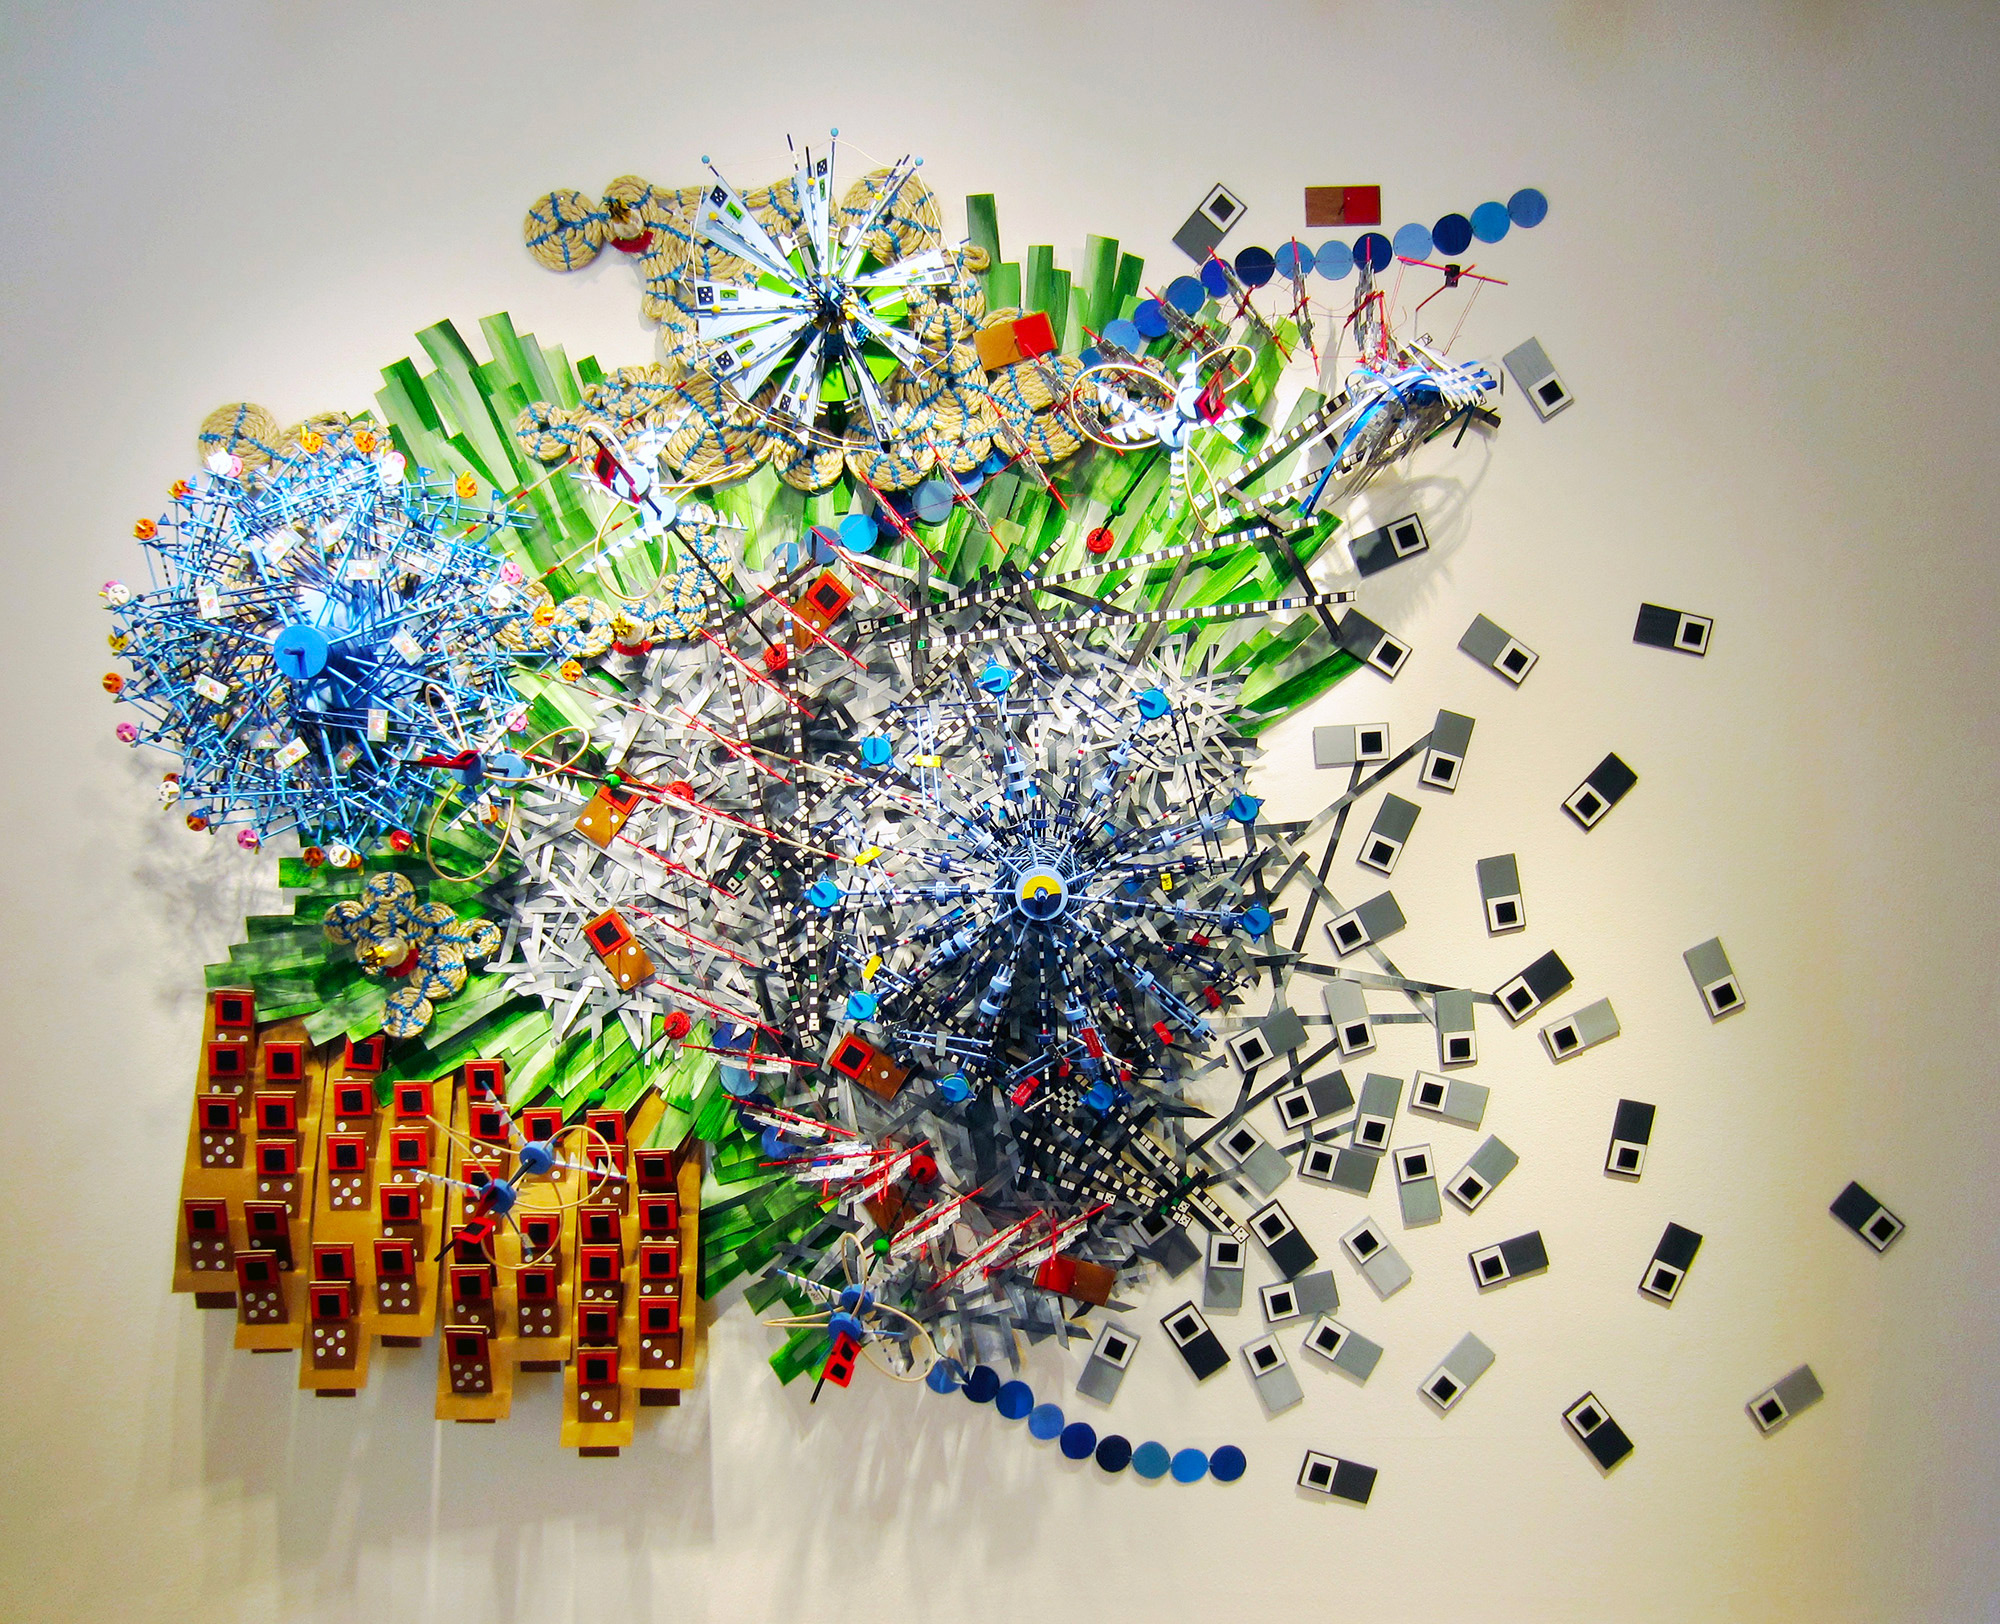 Meteorological Data Visualized as Mixed Media Sculptures by Nathalie Miebach